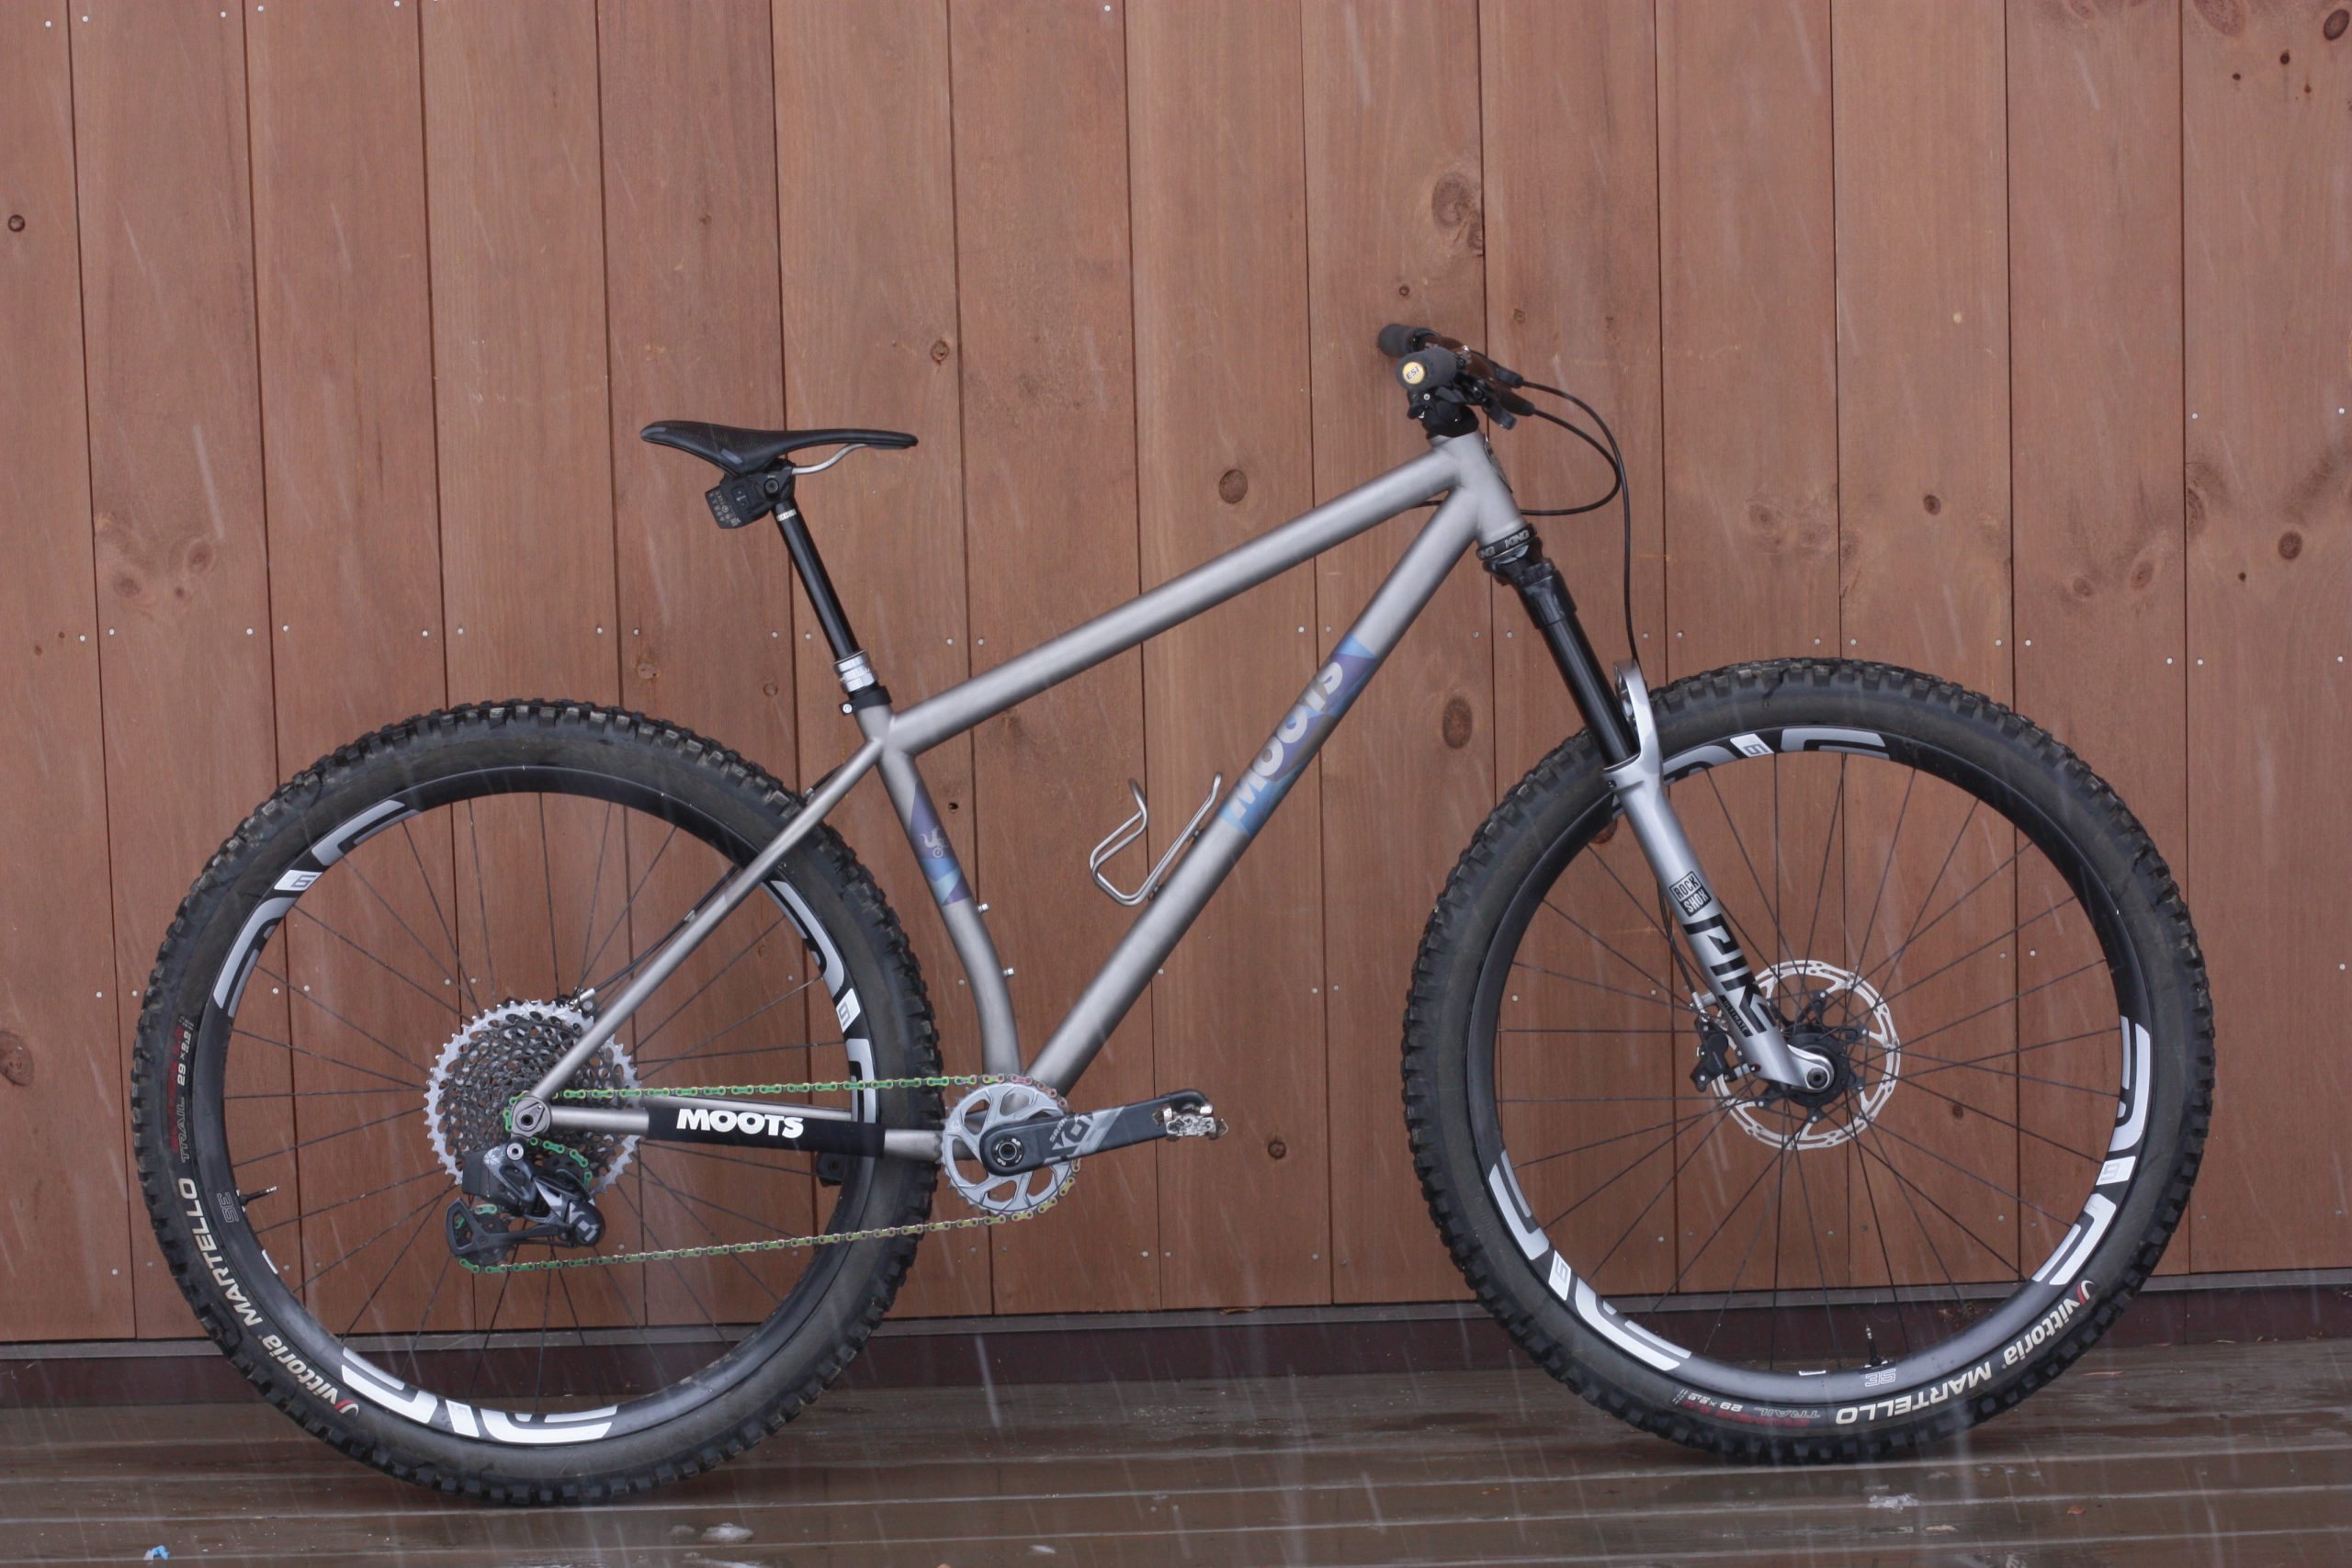 The Moots Womble: A Titanium Hardtail That's Designed to Rip [Review] - Singletracks Mountain Bike News